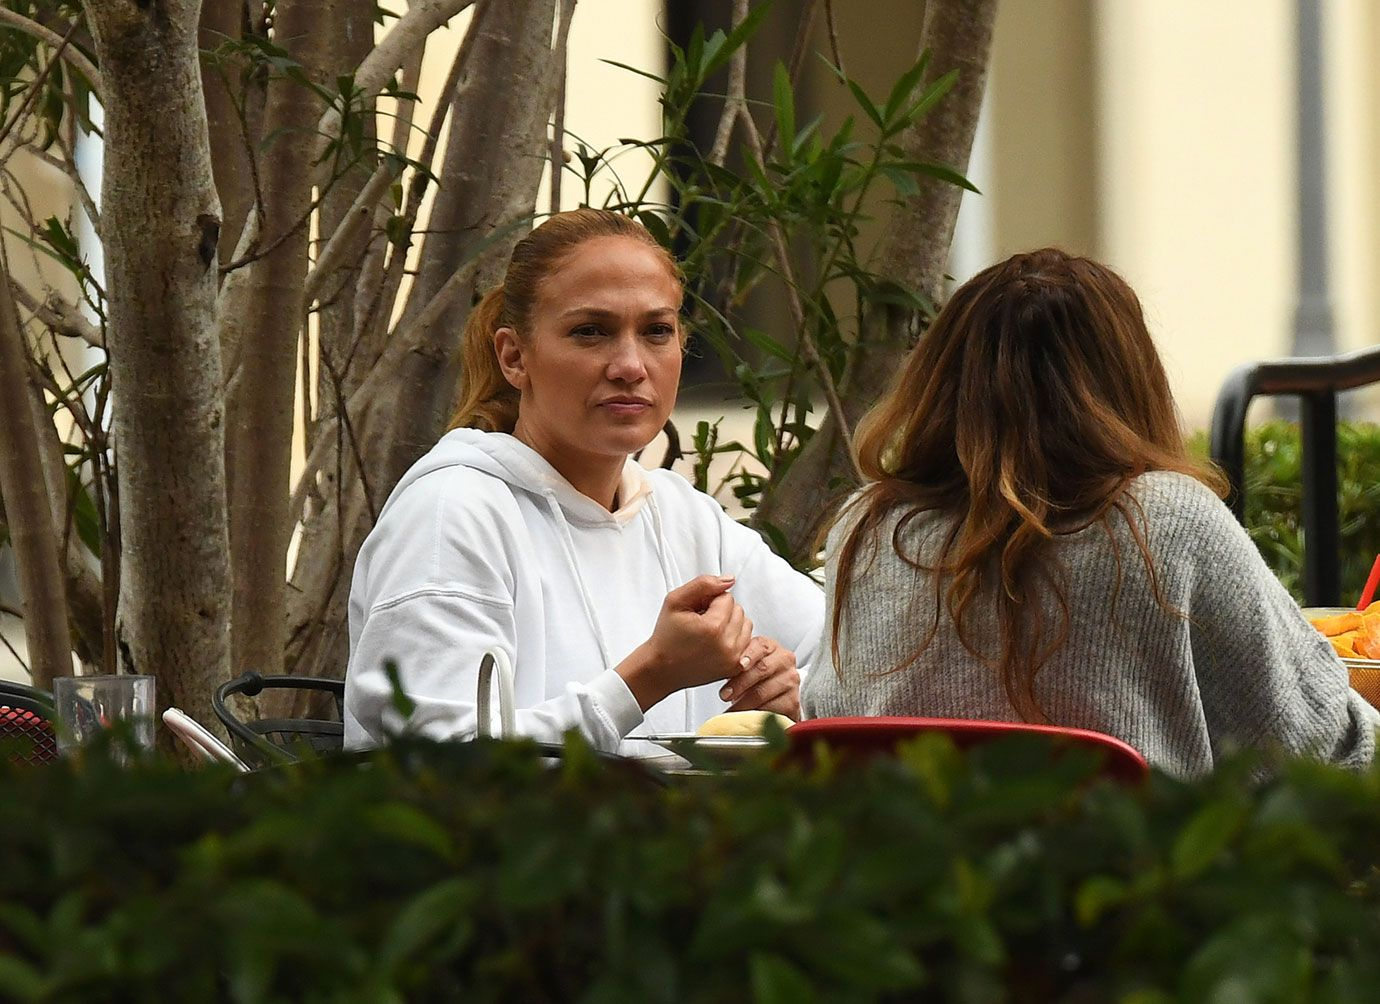 jennifer-lopez-leaves-gym-lunch-with-friends-04-1610554232640.jpg